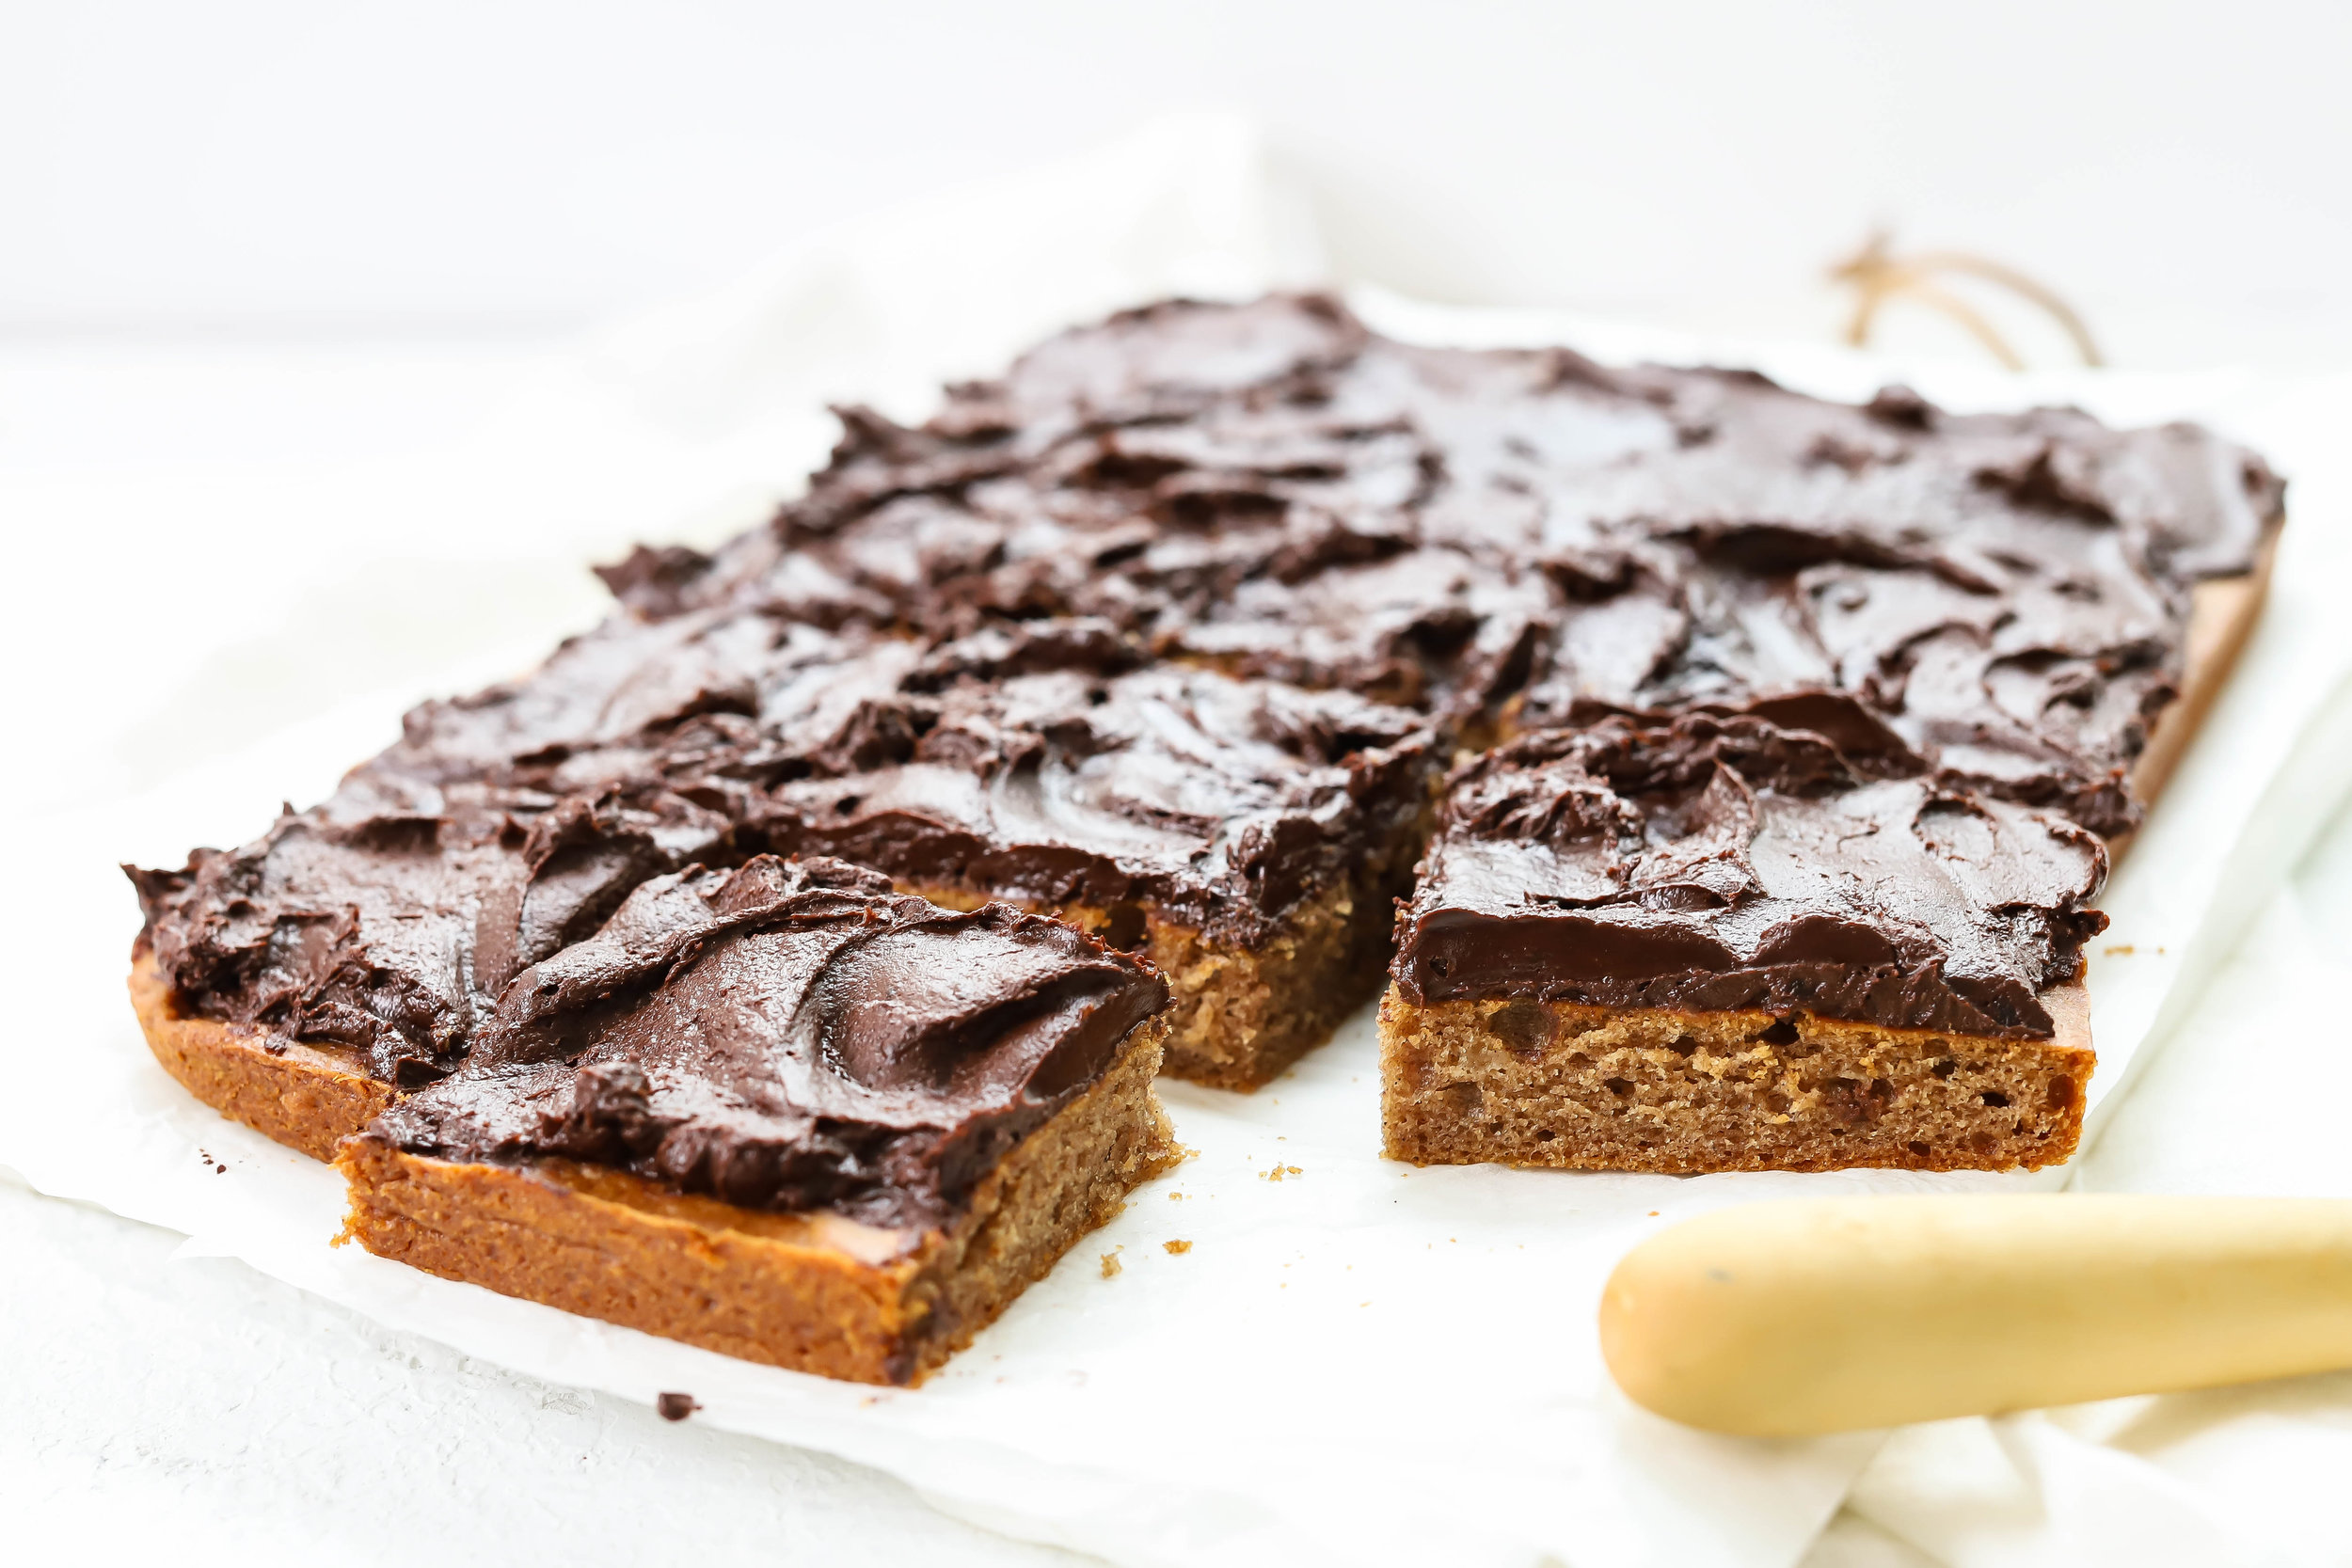 Vegan and gluten-free sheet cake with chocolate frosting